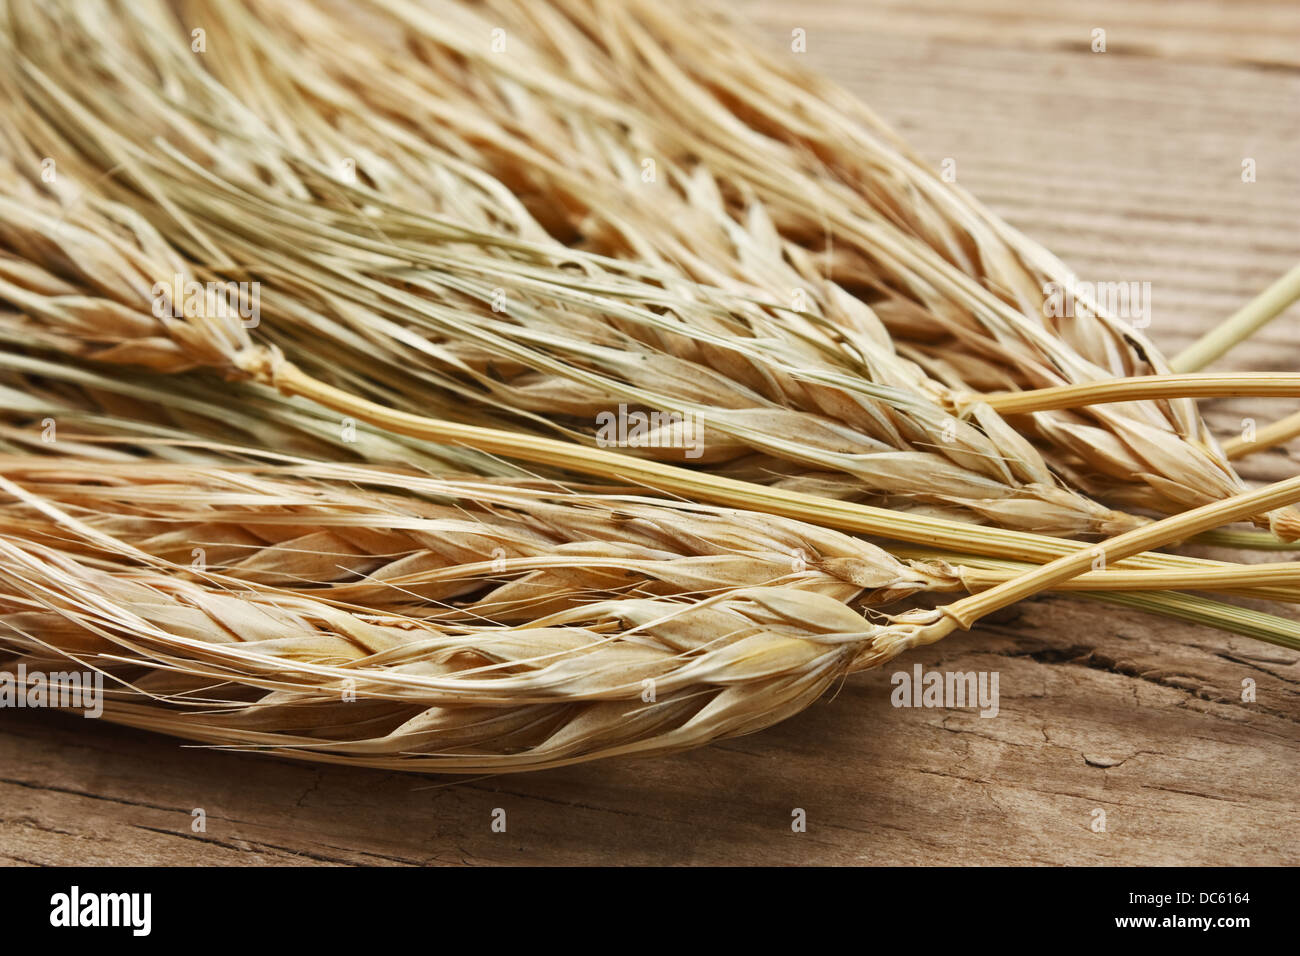 dry ears of corn on the wooden table - Stock Image